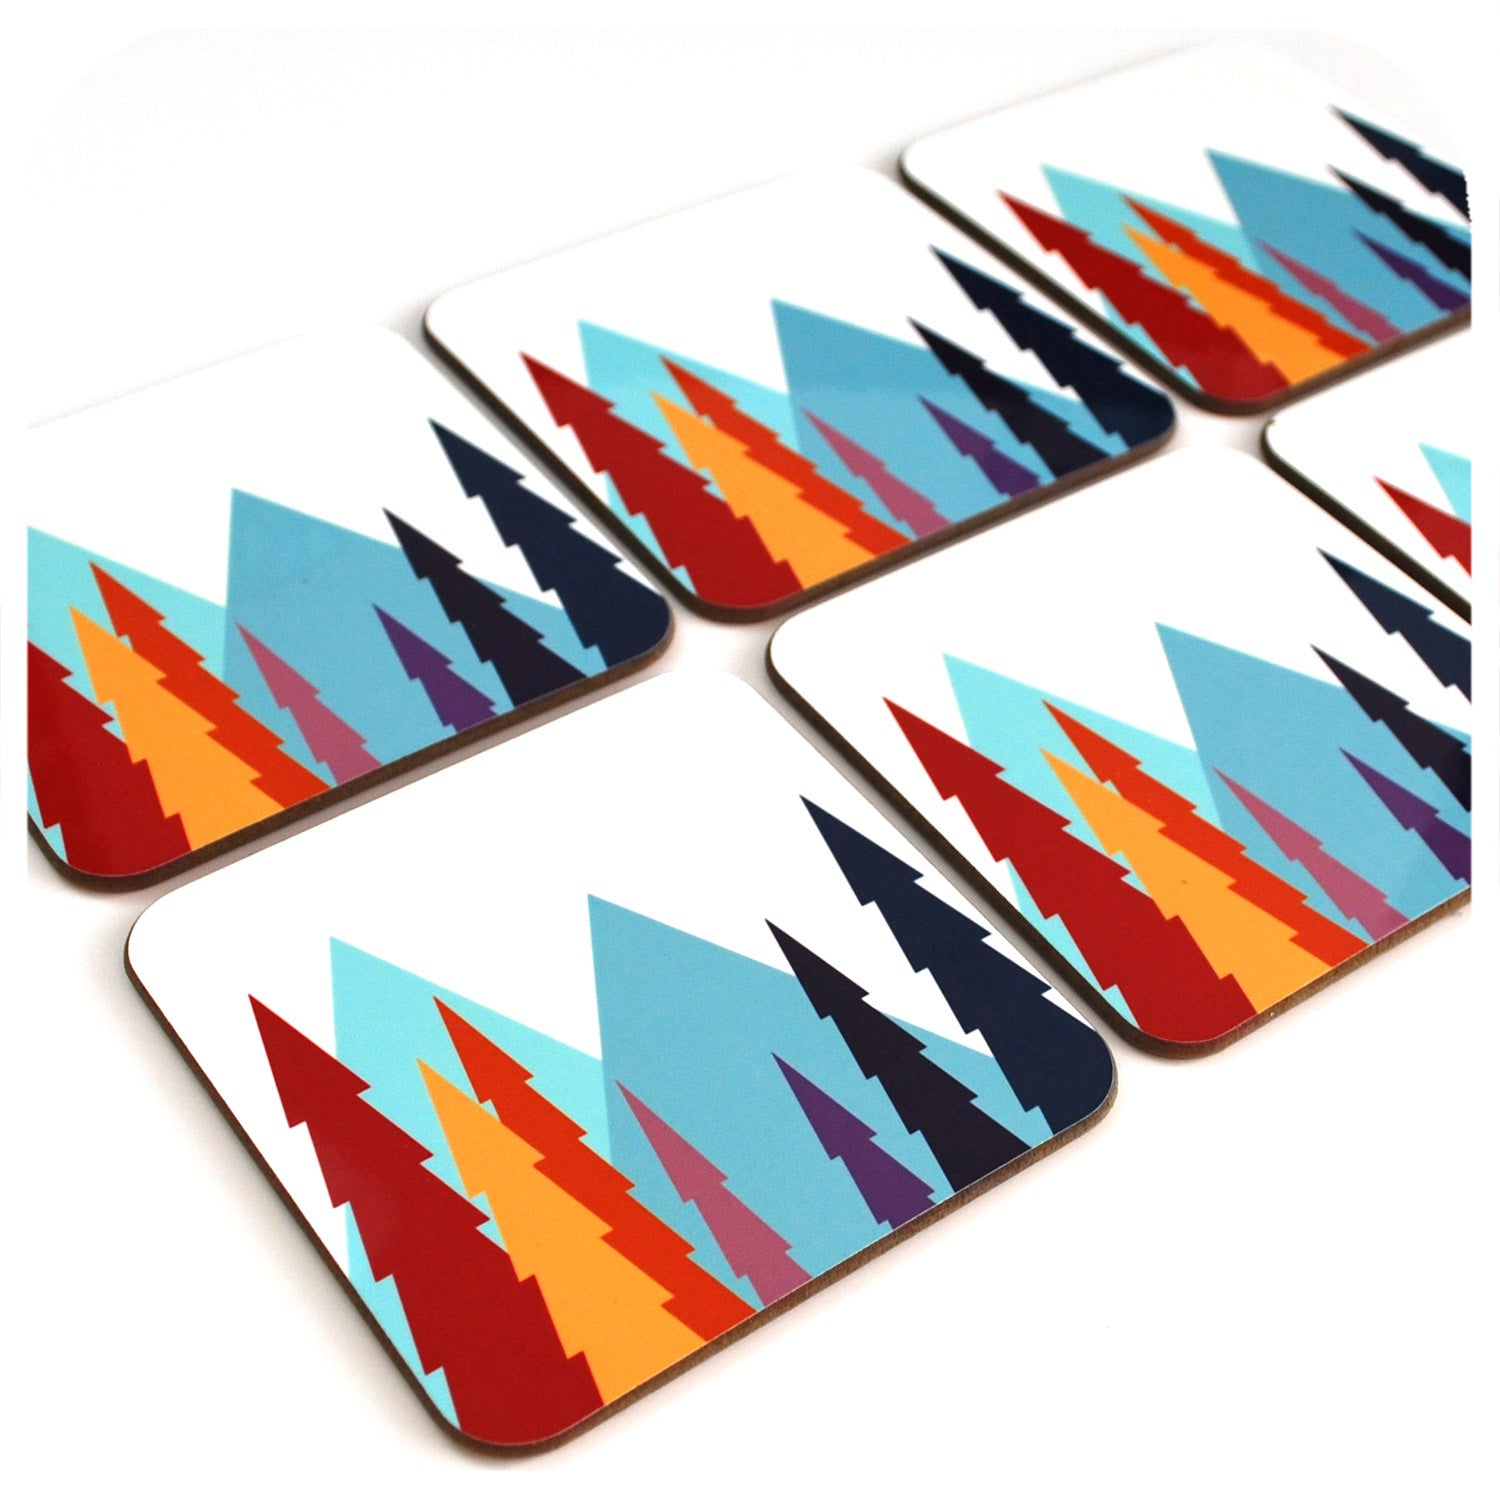 Nordic Trees Coasters, set of 6 Scandi style drinks coasters | The inkabilly Emporium